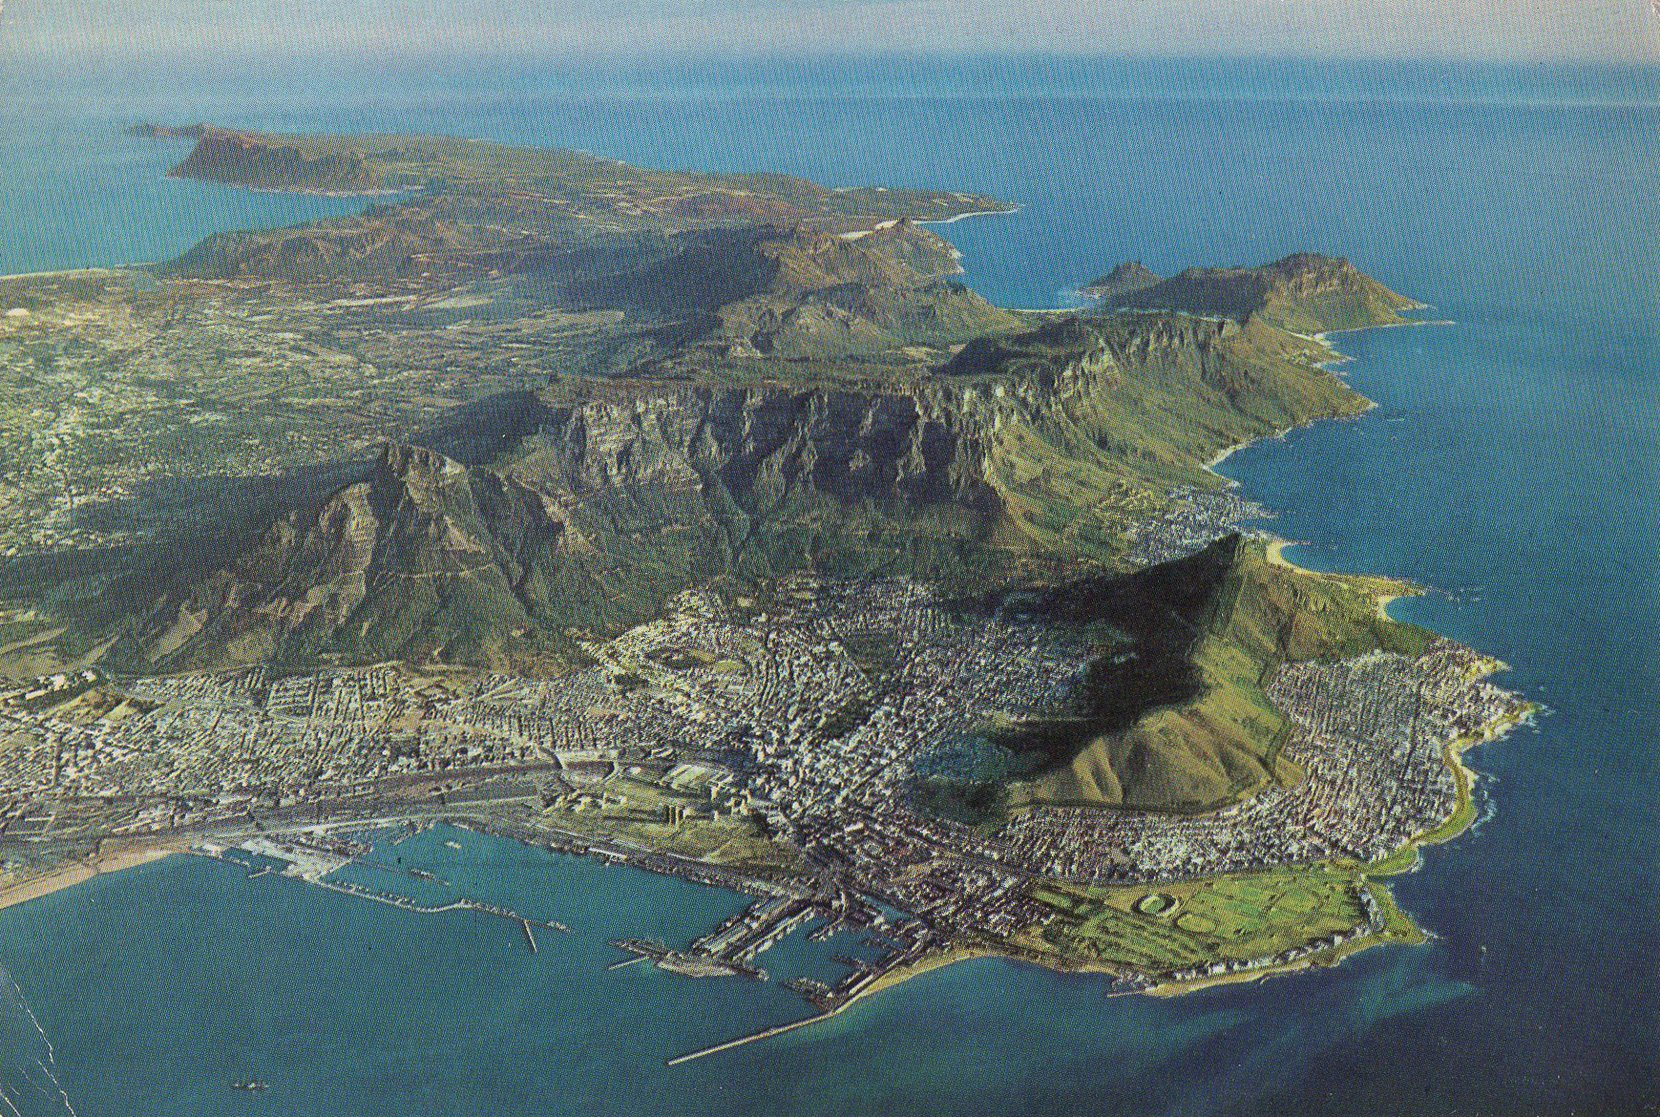 kaapse skiereiland, cape town (south africa) postcards standard – printed card